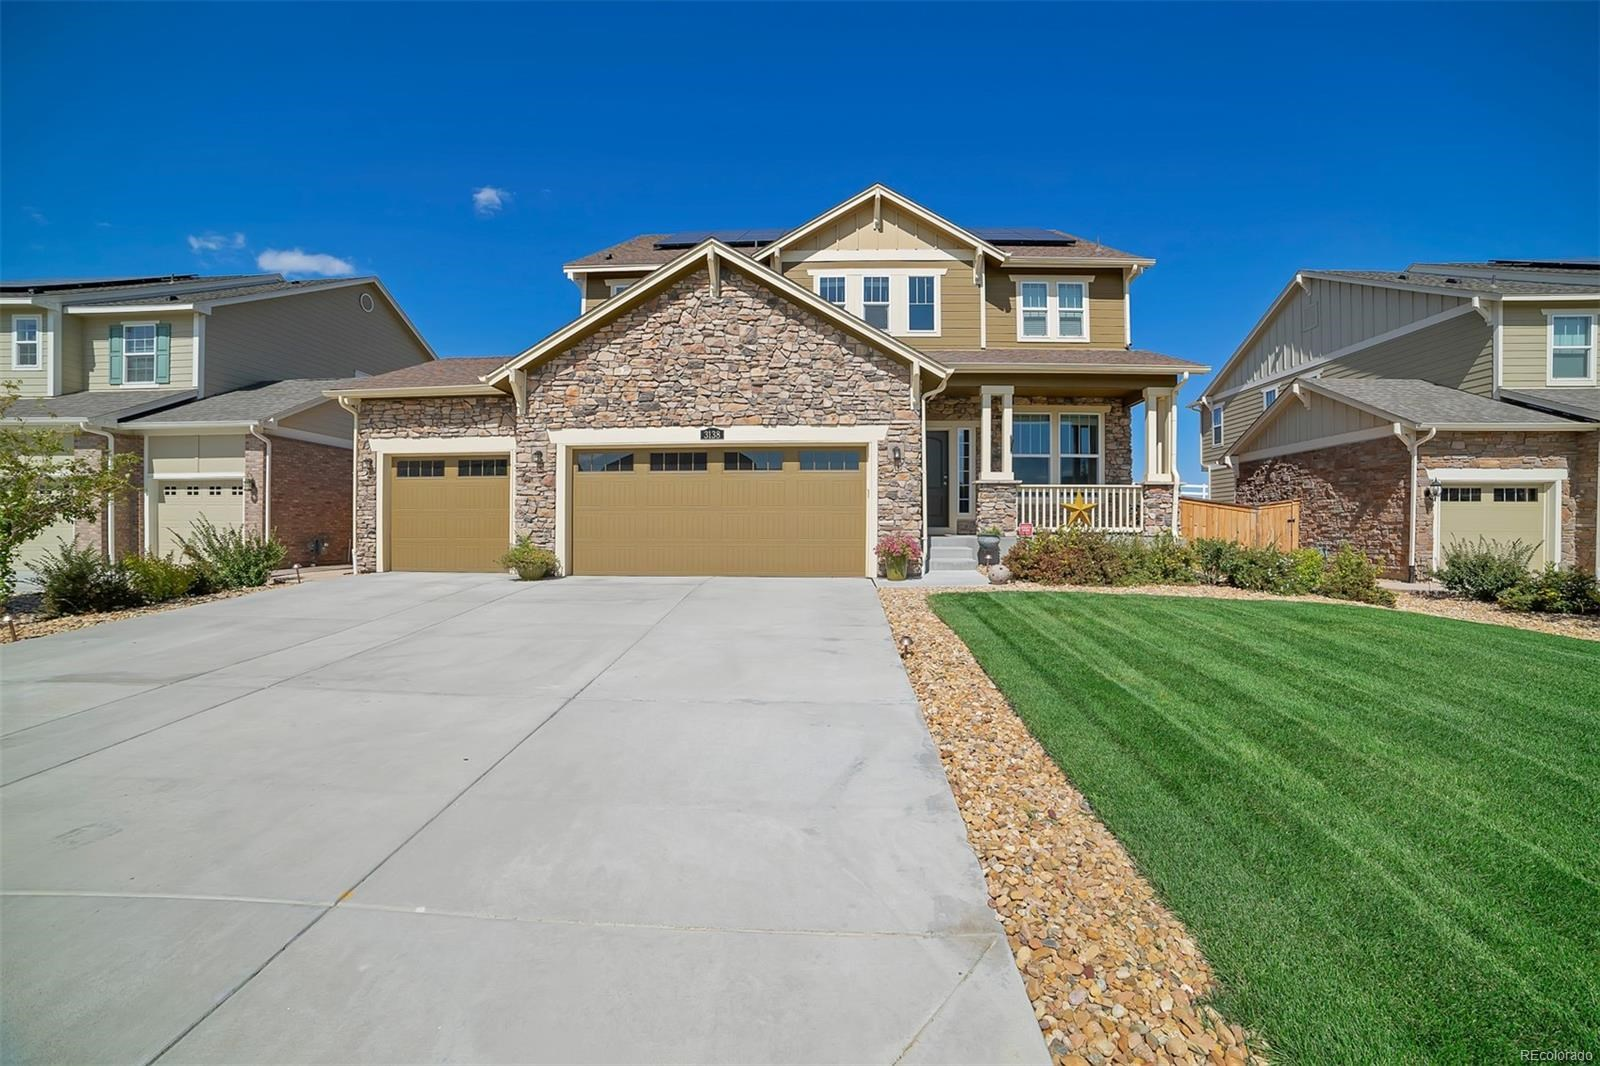 MLS# 2593781 - 1 - 3138 S Nepal Way, Aurora, CO 80013